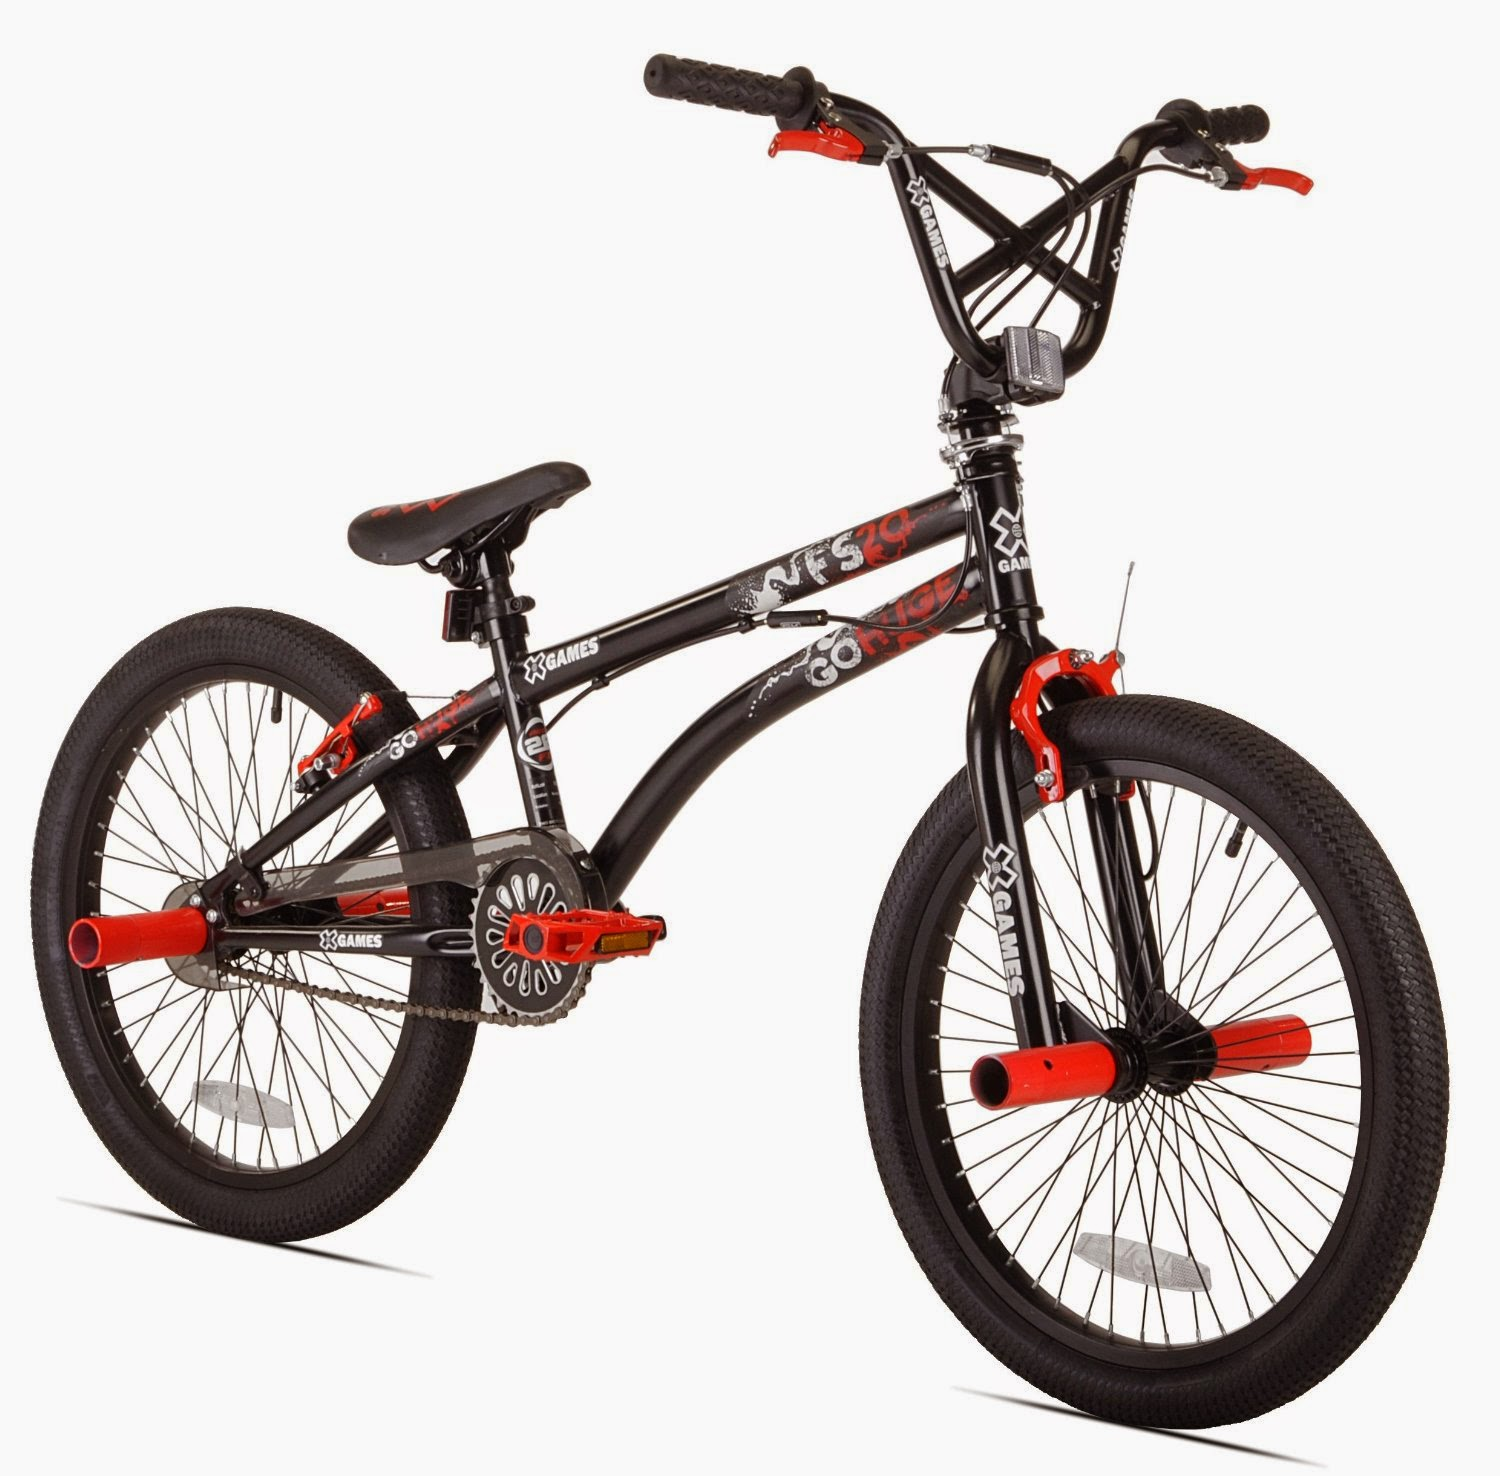 Exercise Bike Zone: X-Games FS20 Freestyle BMX Bicycle ...